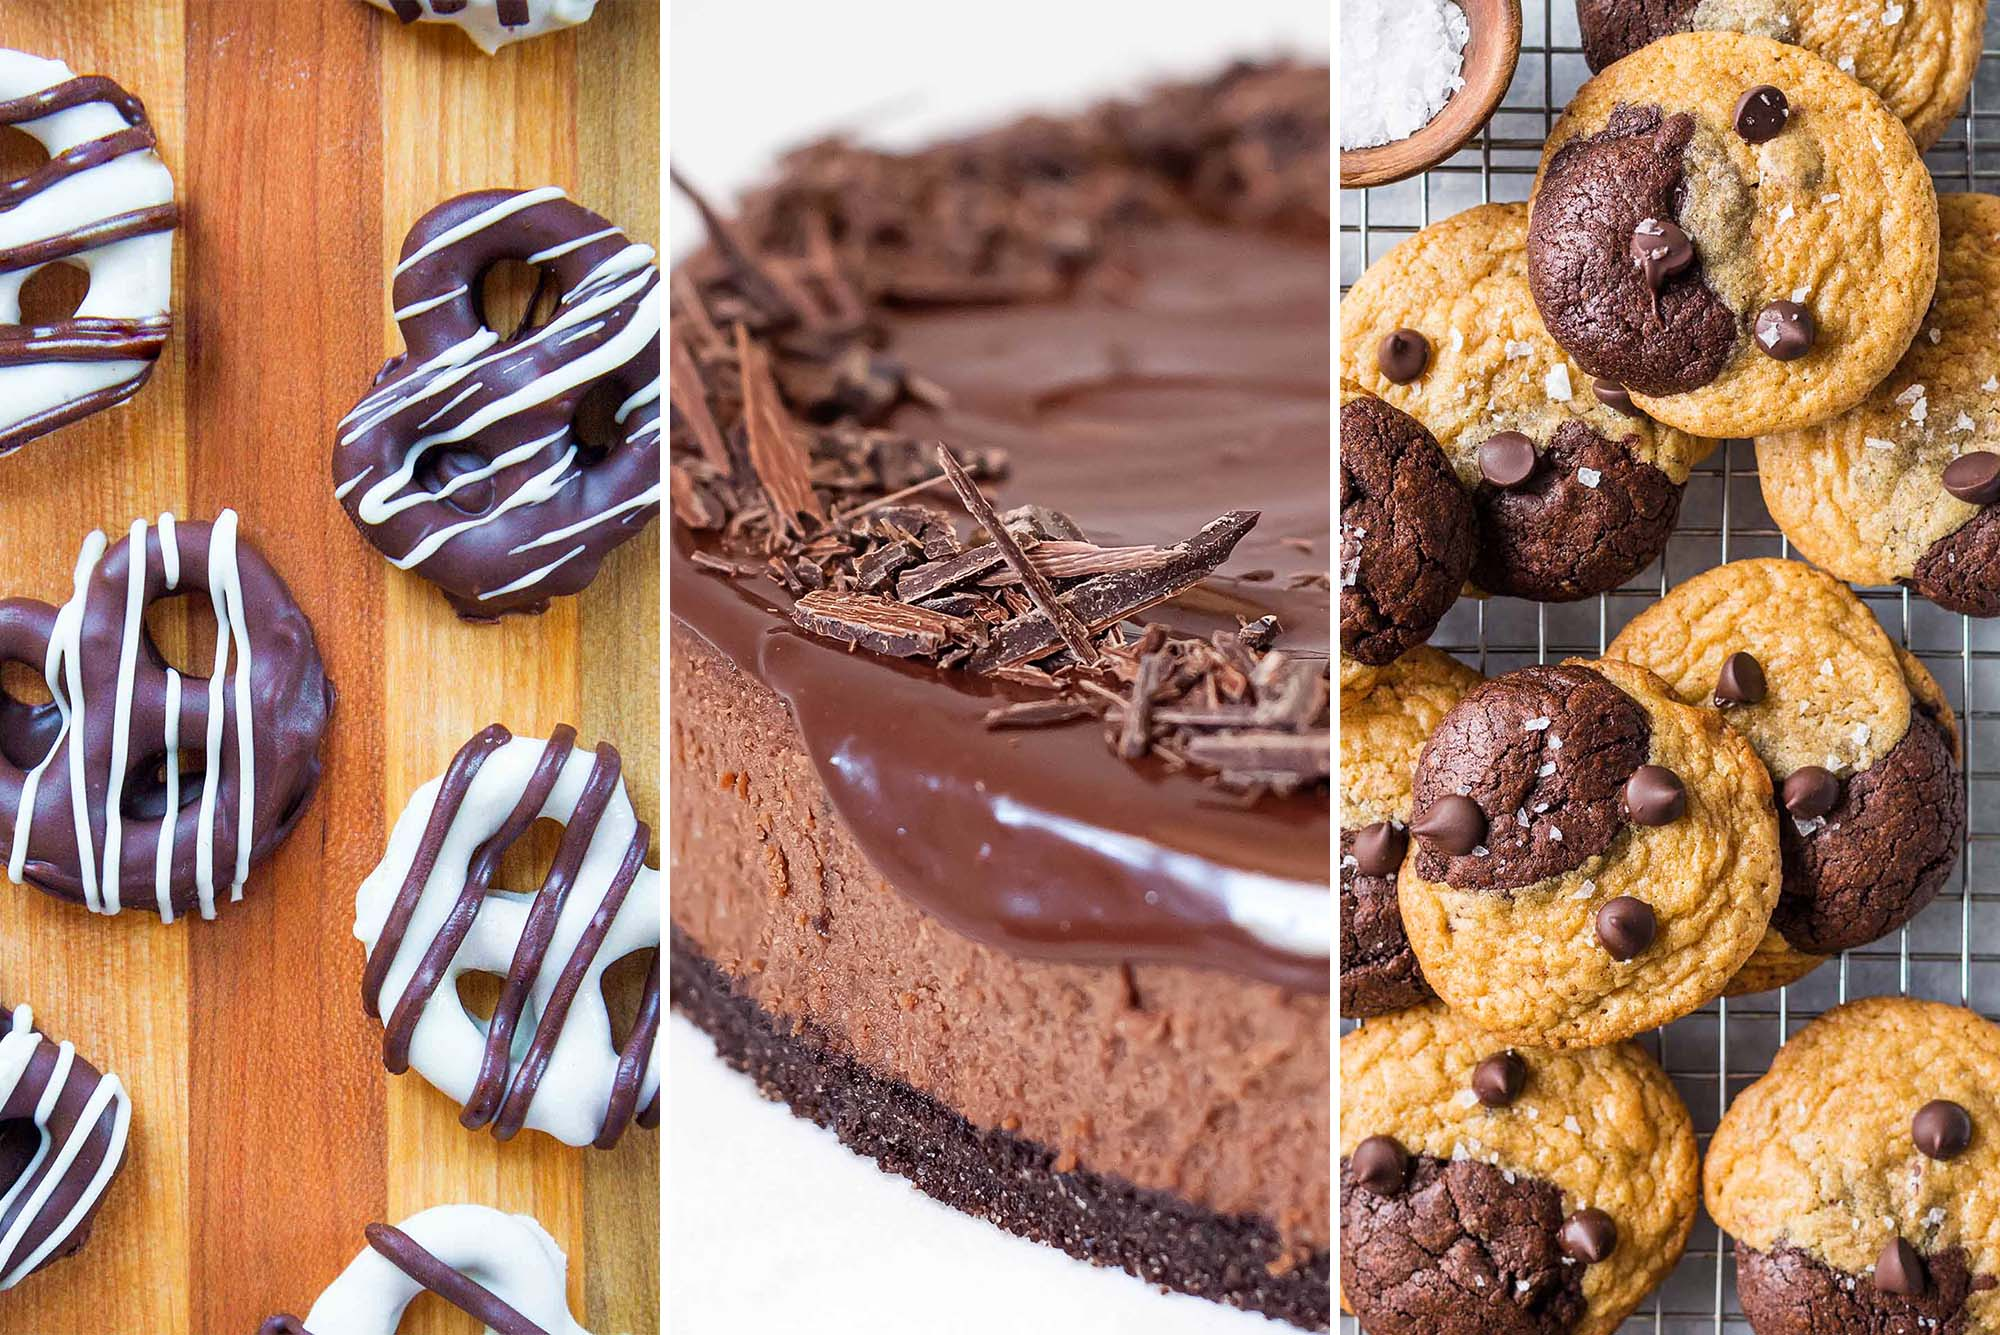 Three pictures set side by side. Chocolate pretzels drizzled with white chocolate on the left. In the center is a Triple Chocolate Cheesecake and on the right are Brookies set on a cooling rack